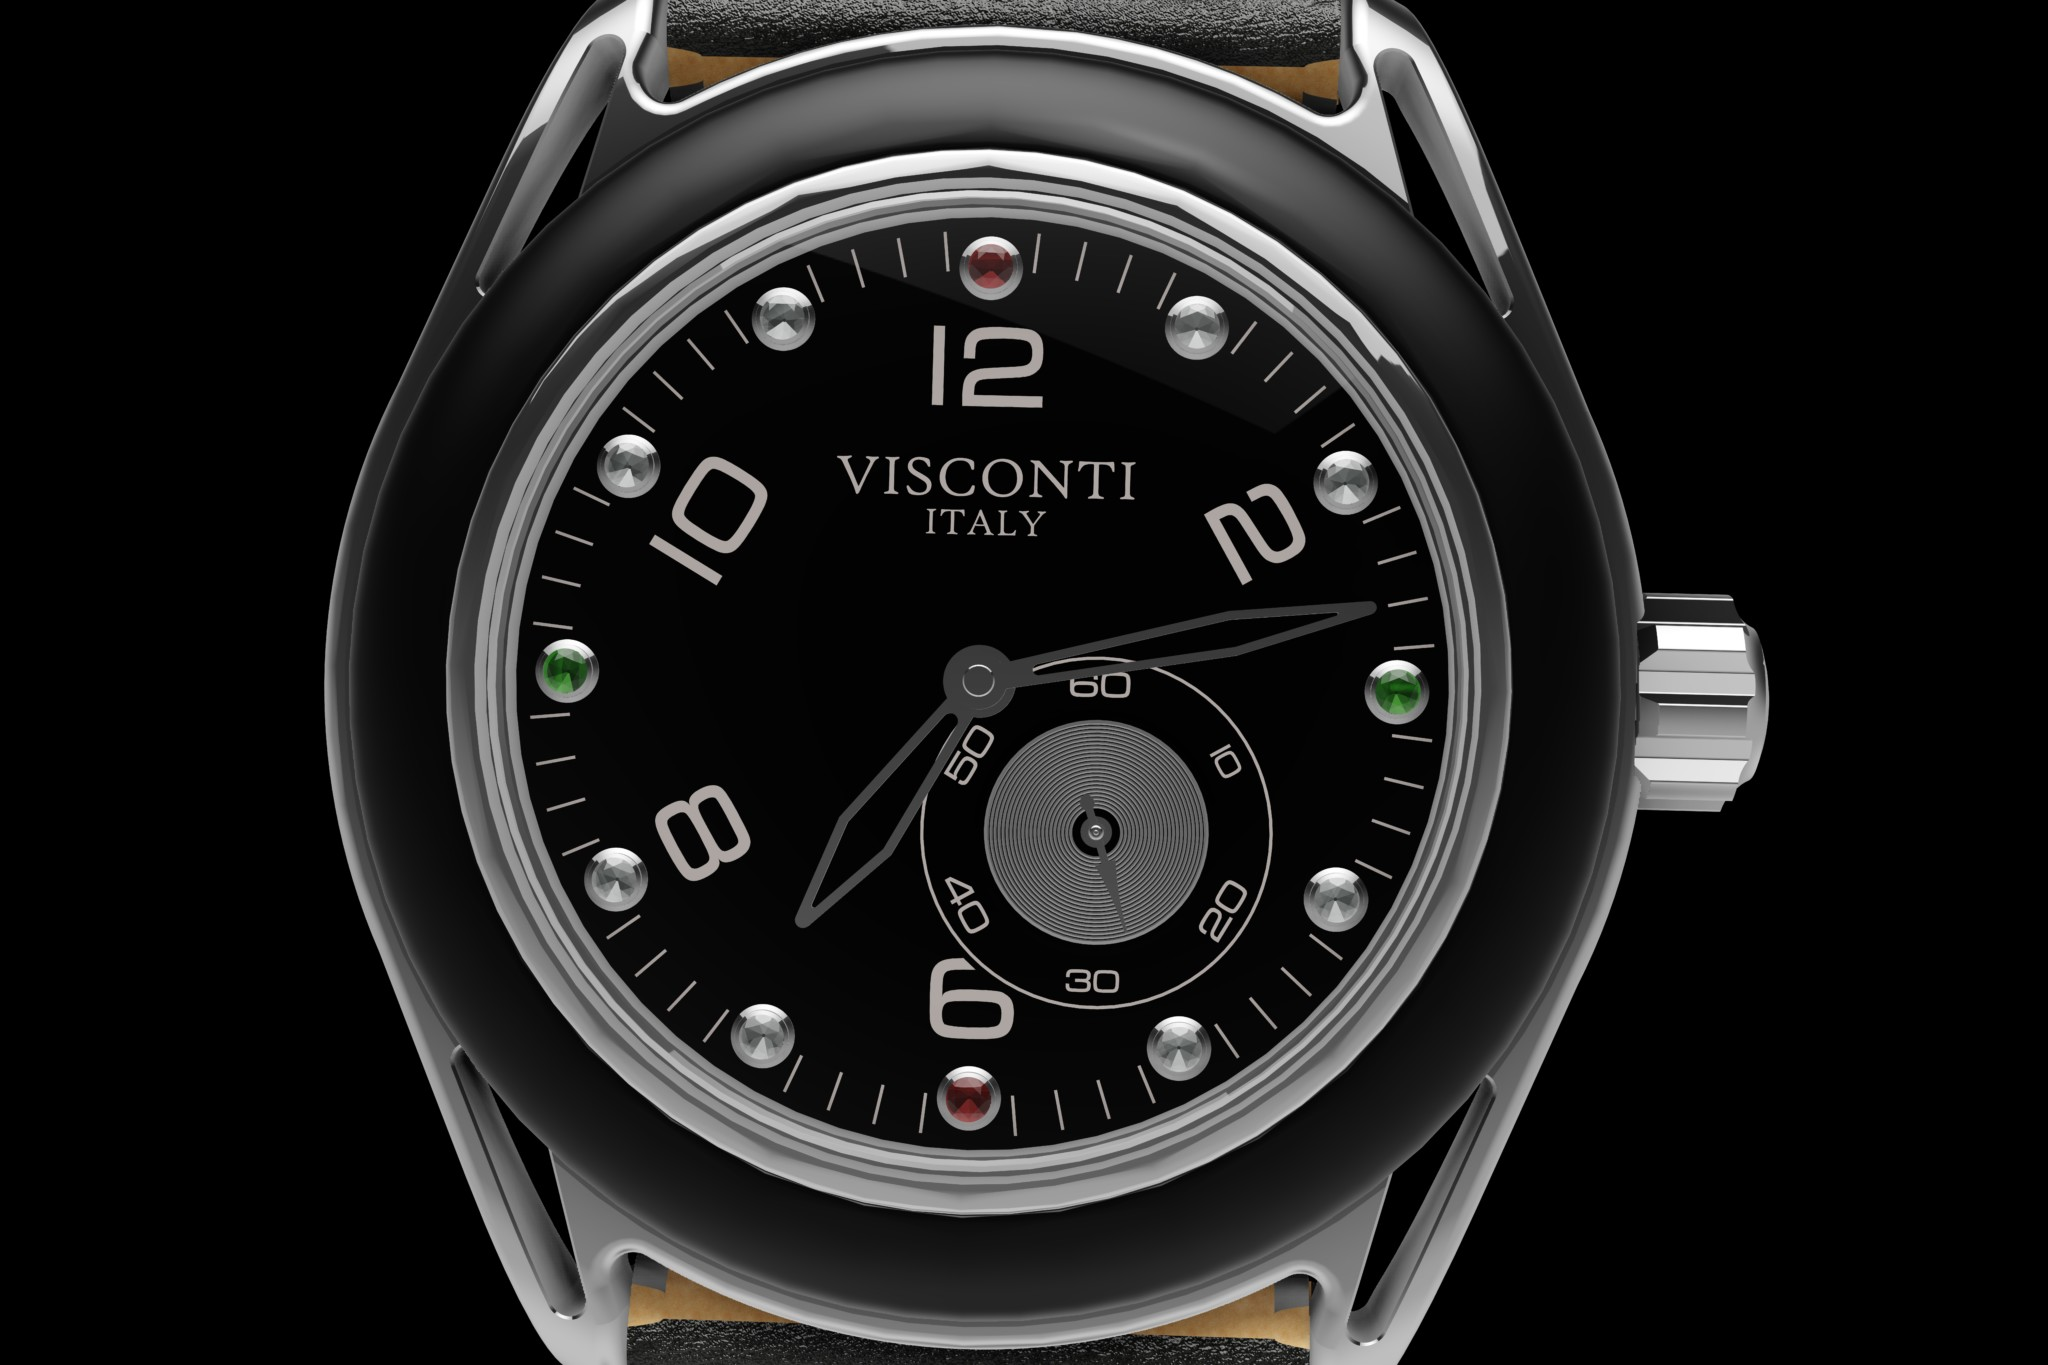 Visconti's Lava watch.